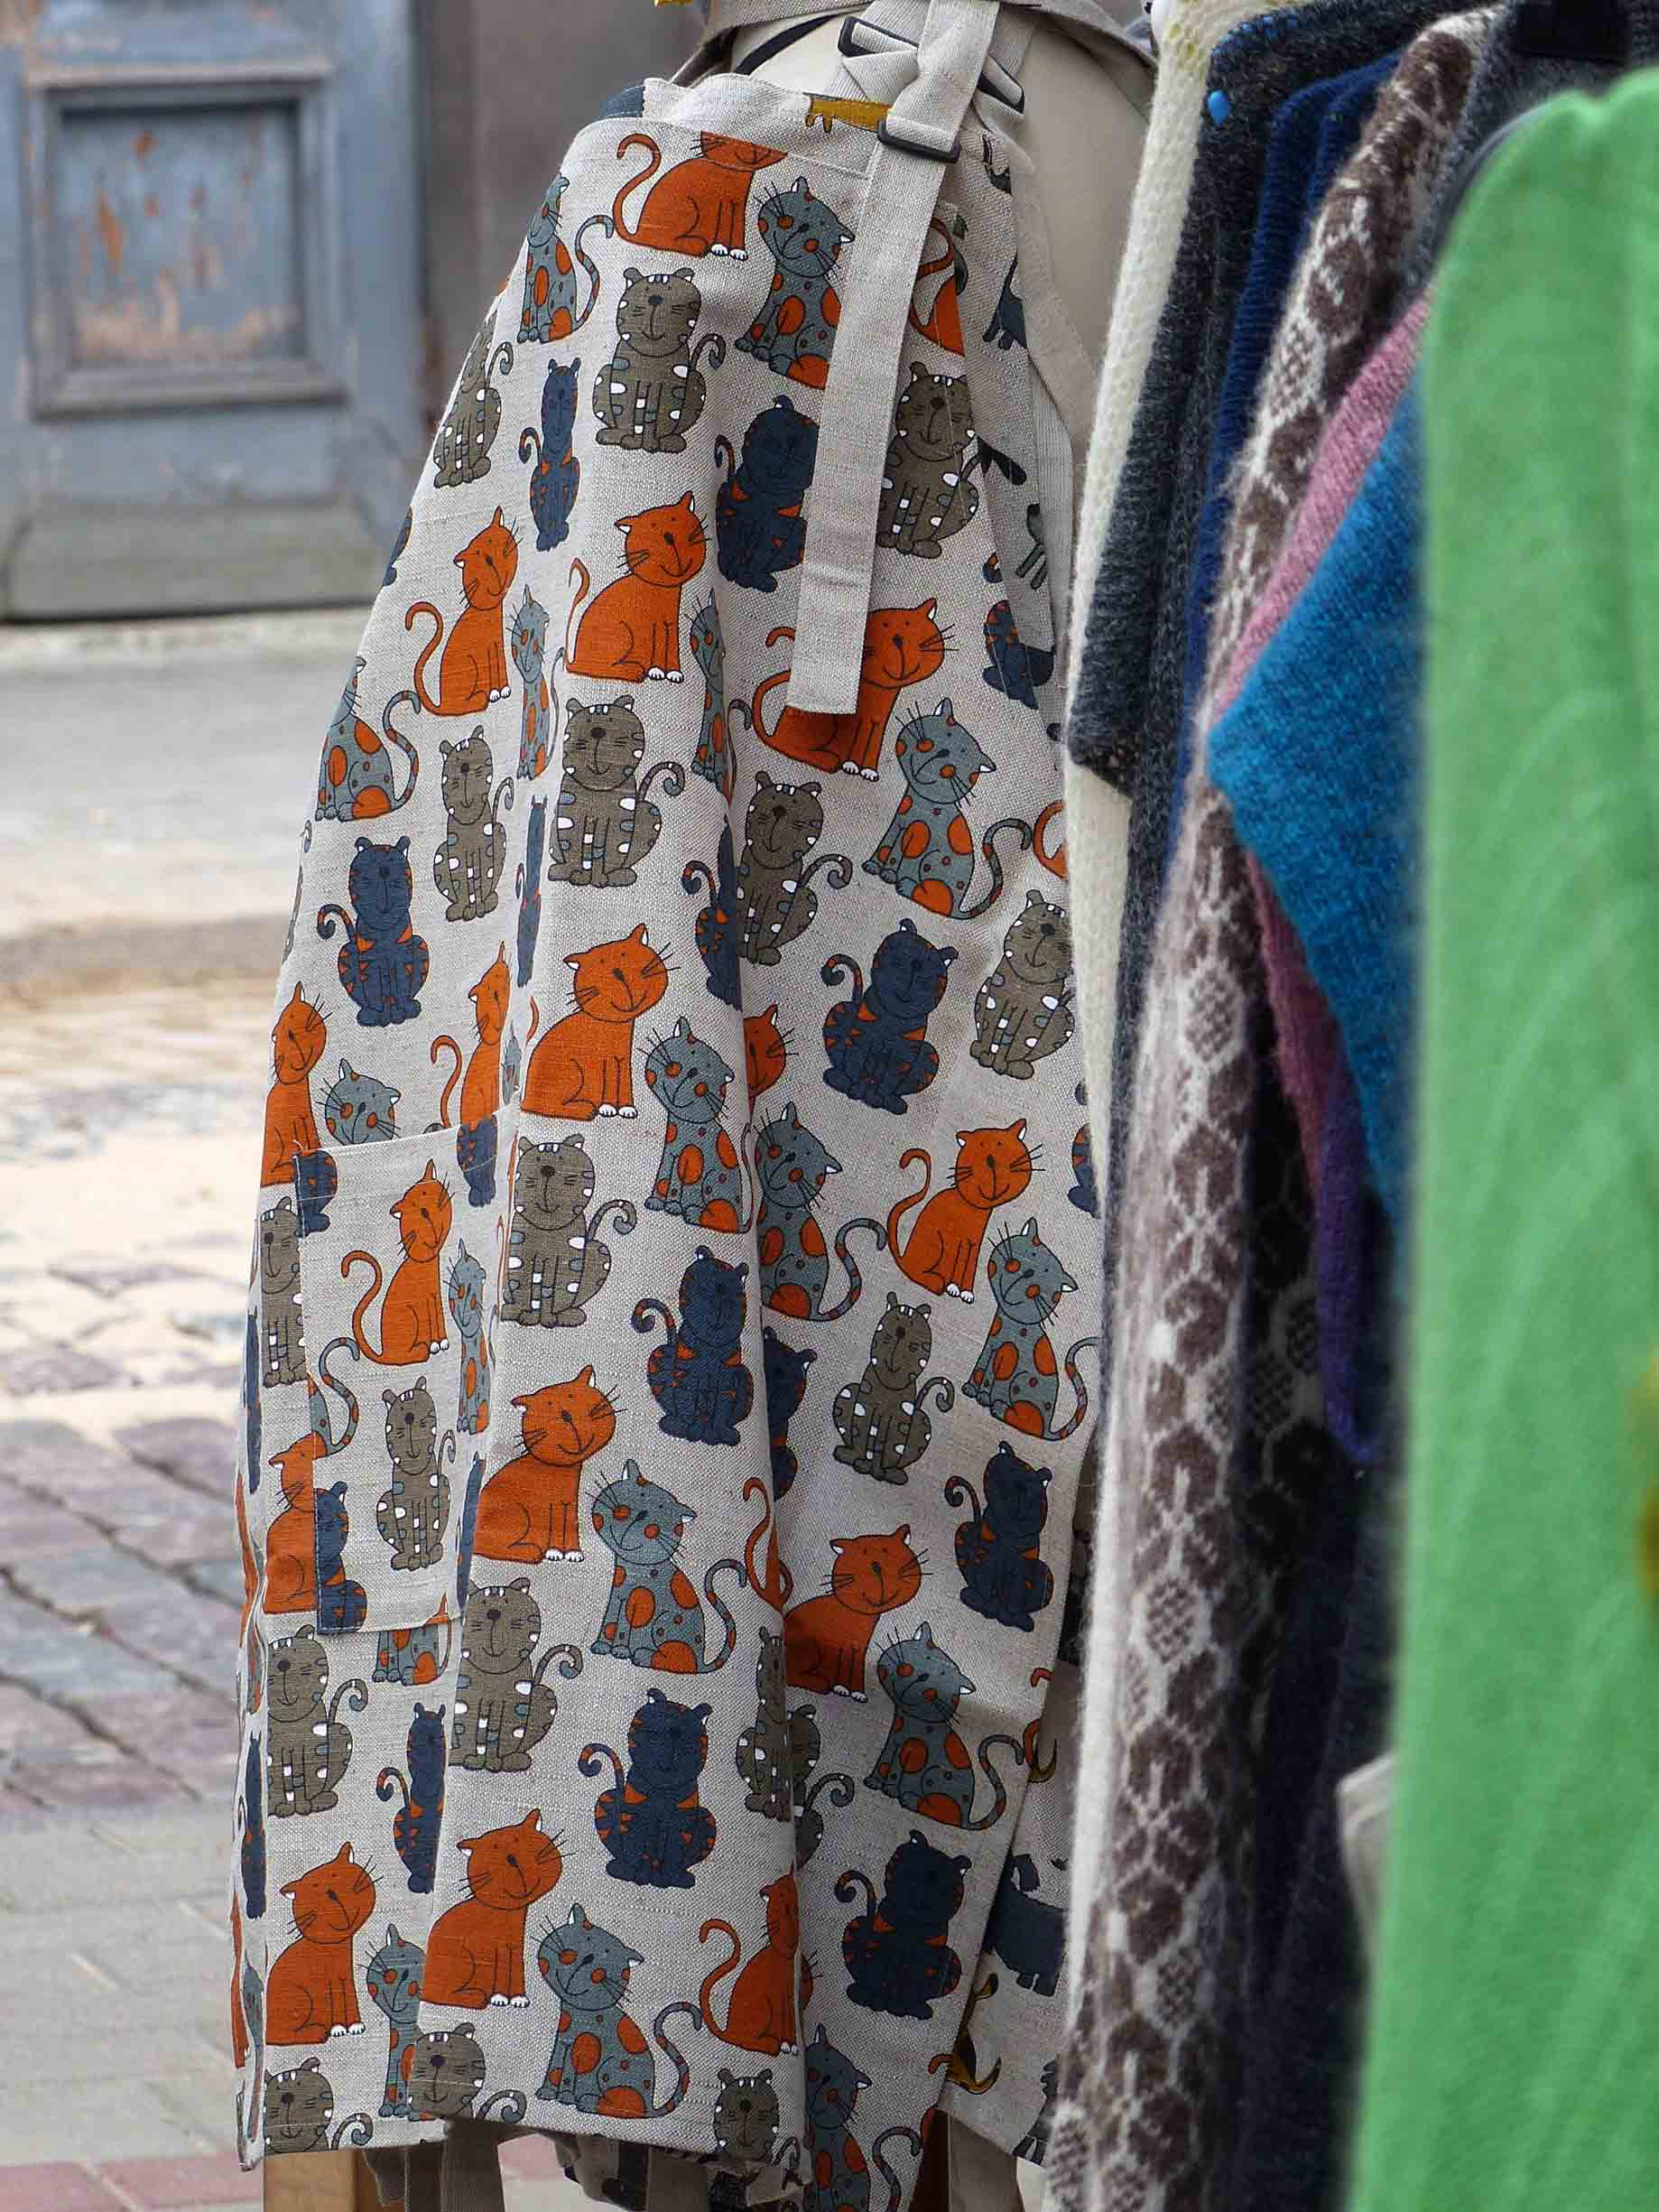 Fabric decorated with different colour cats